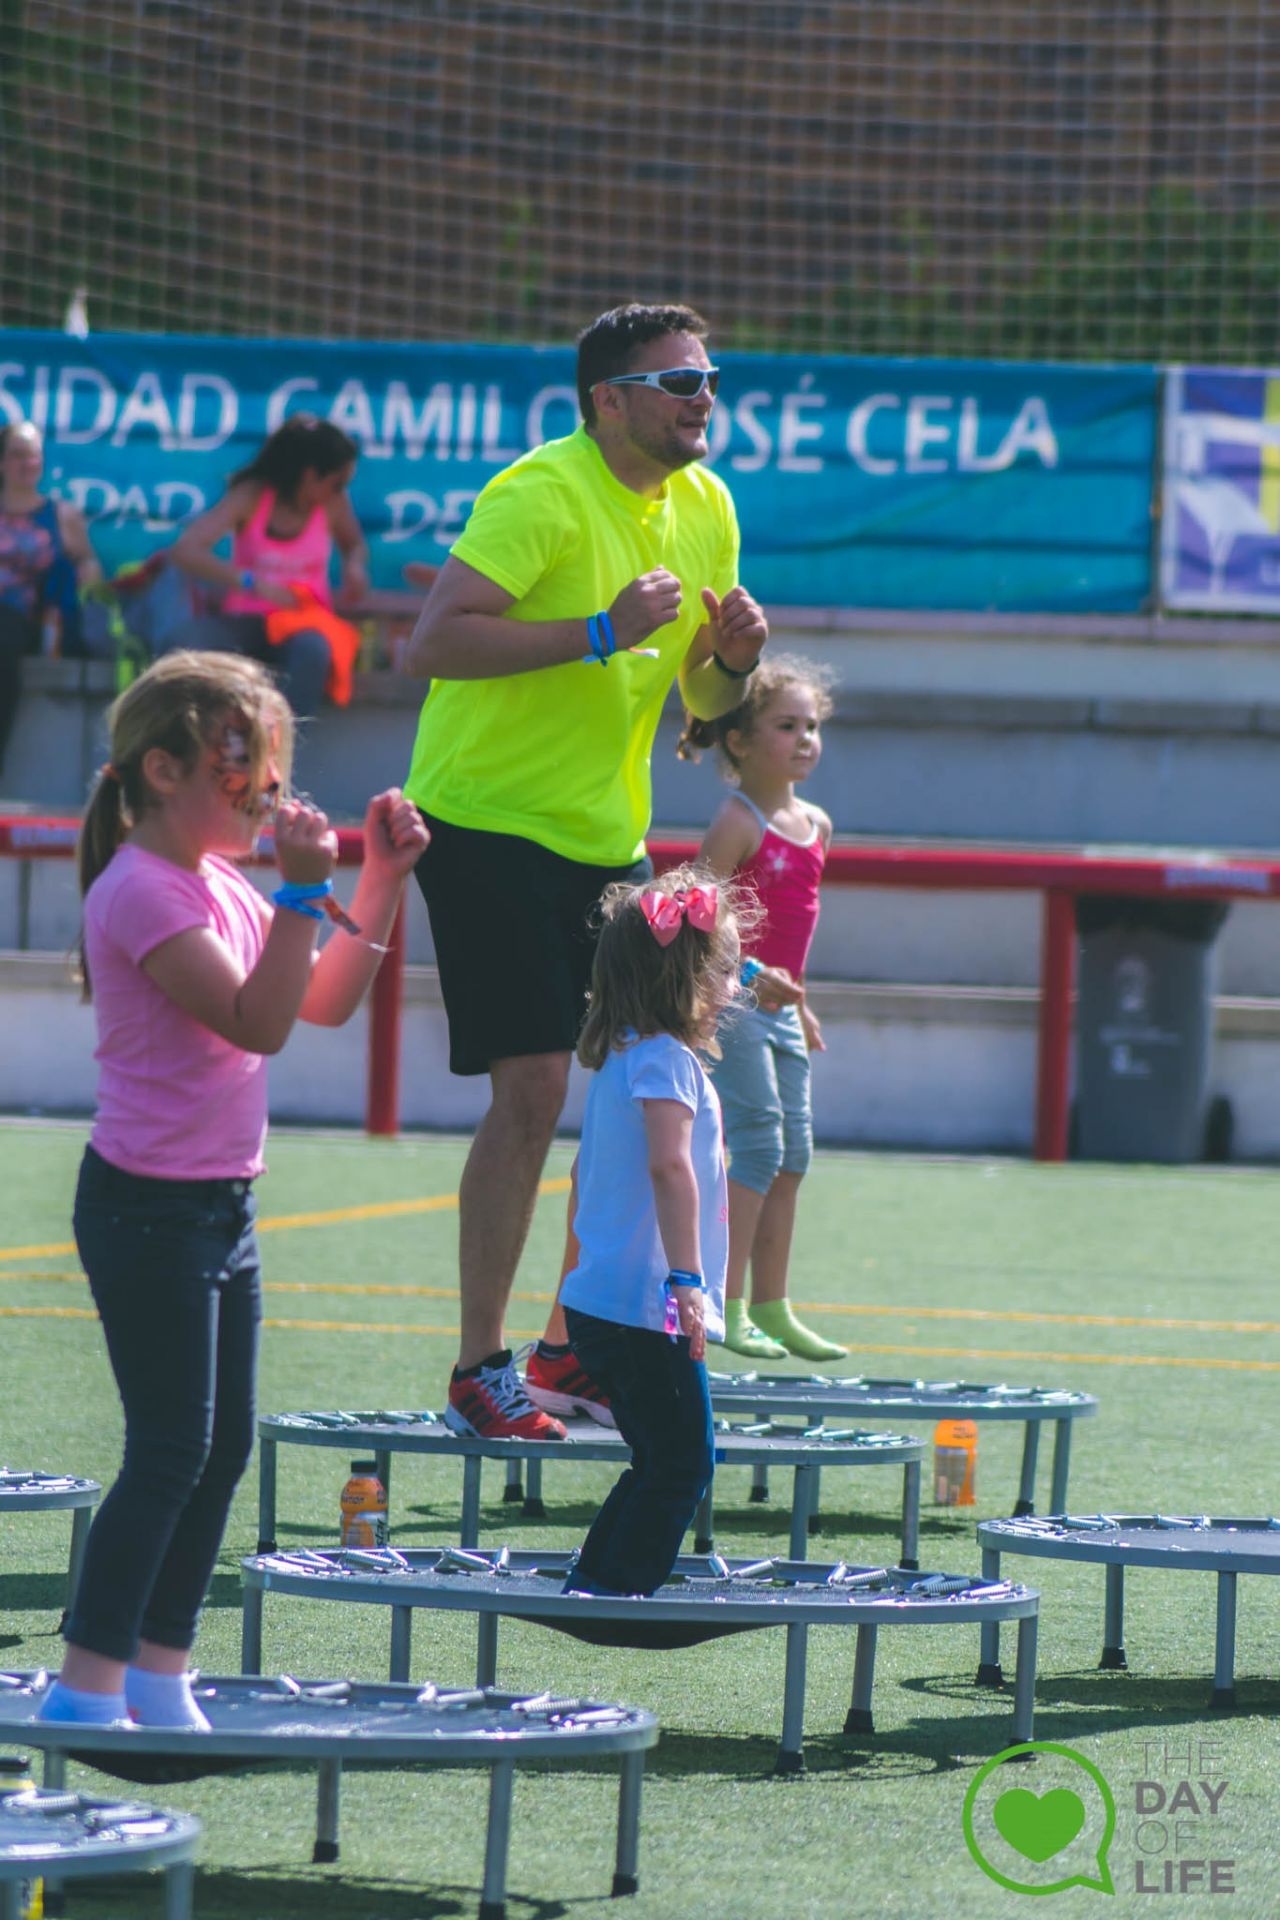 Imágenes de The Day of Life 2016